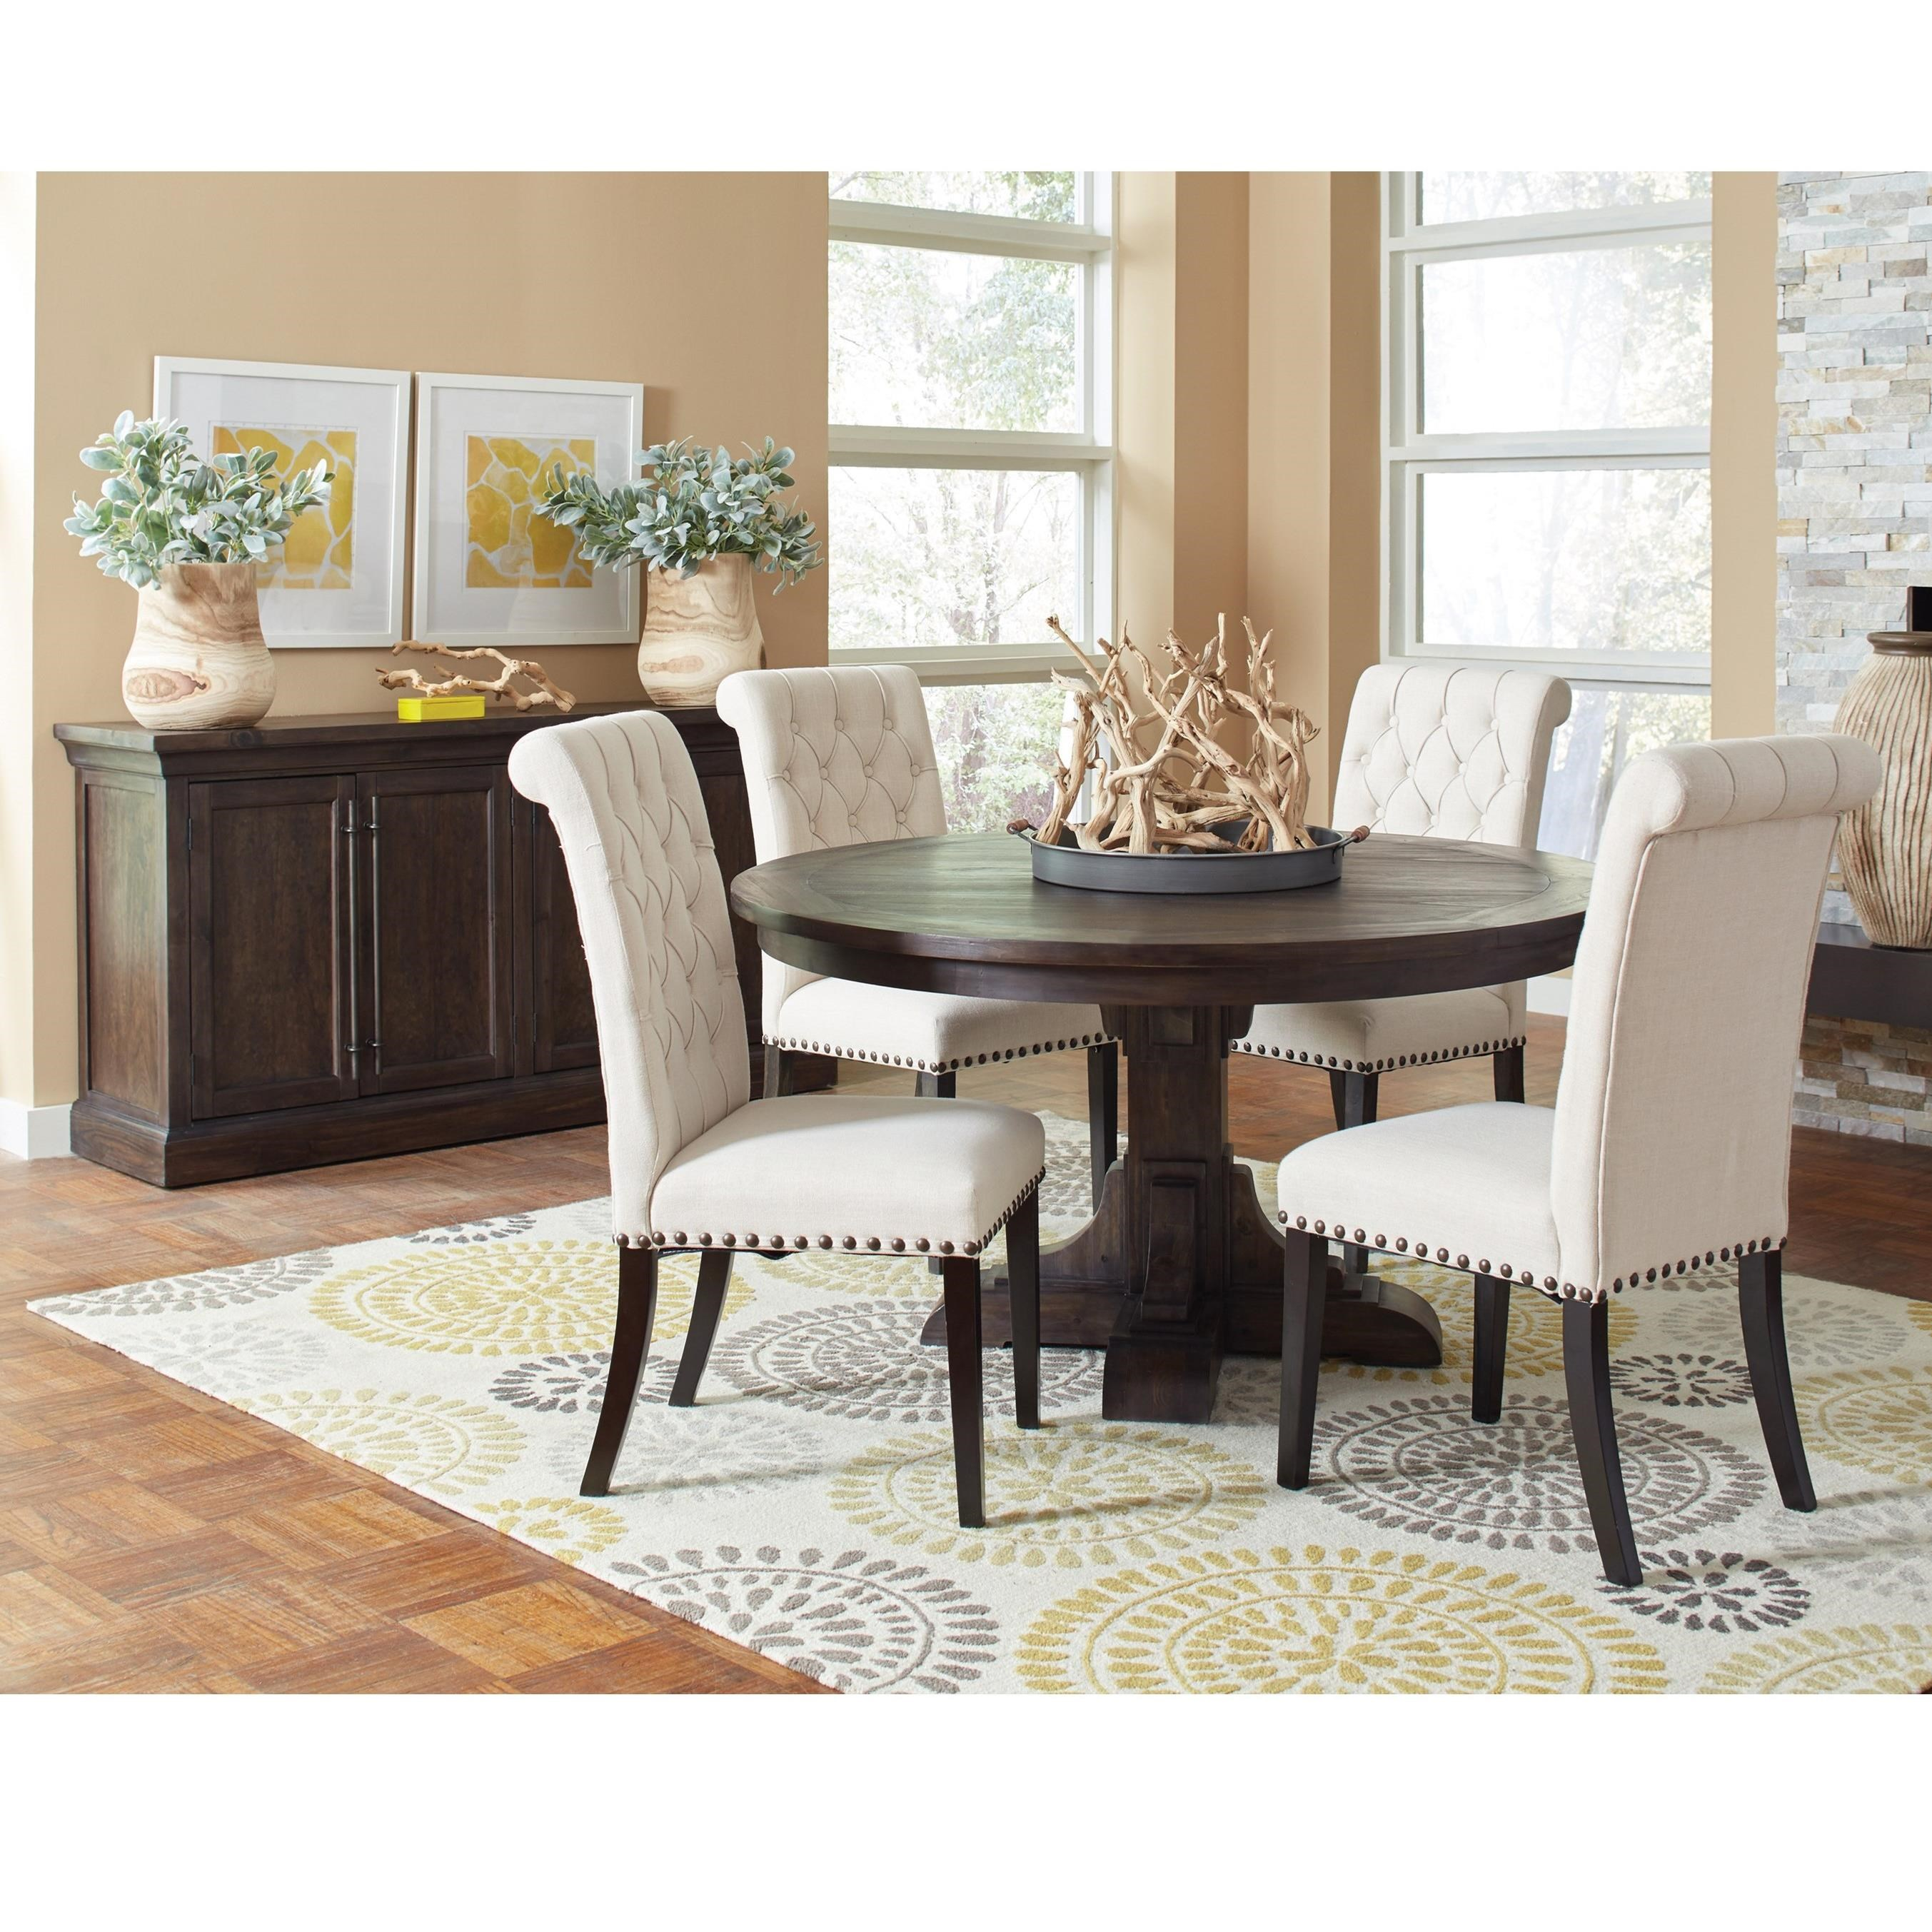 Coaster weber casual dining room group with cream for Casual dining room